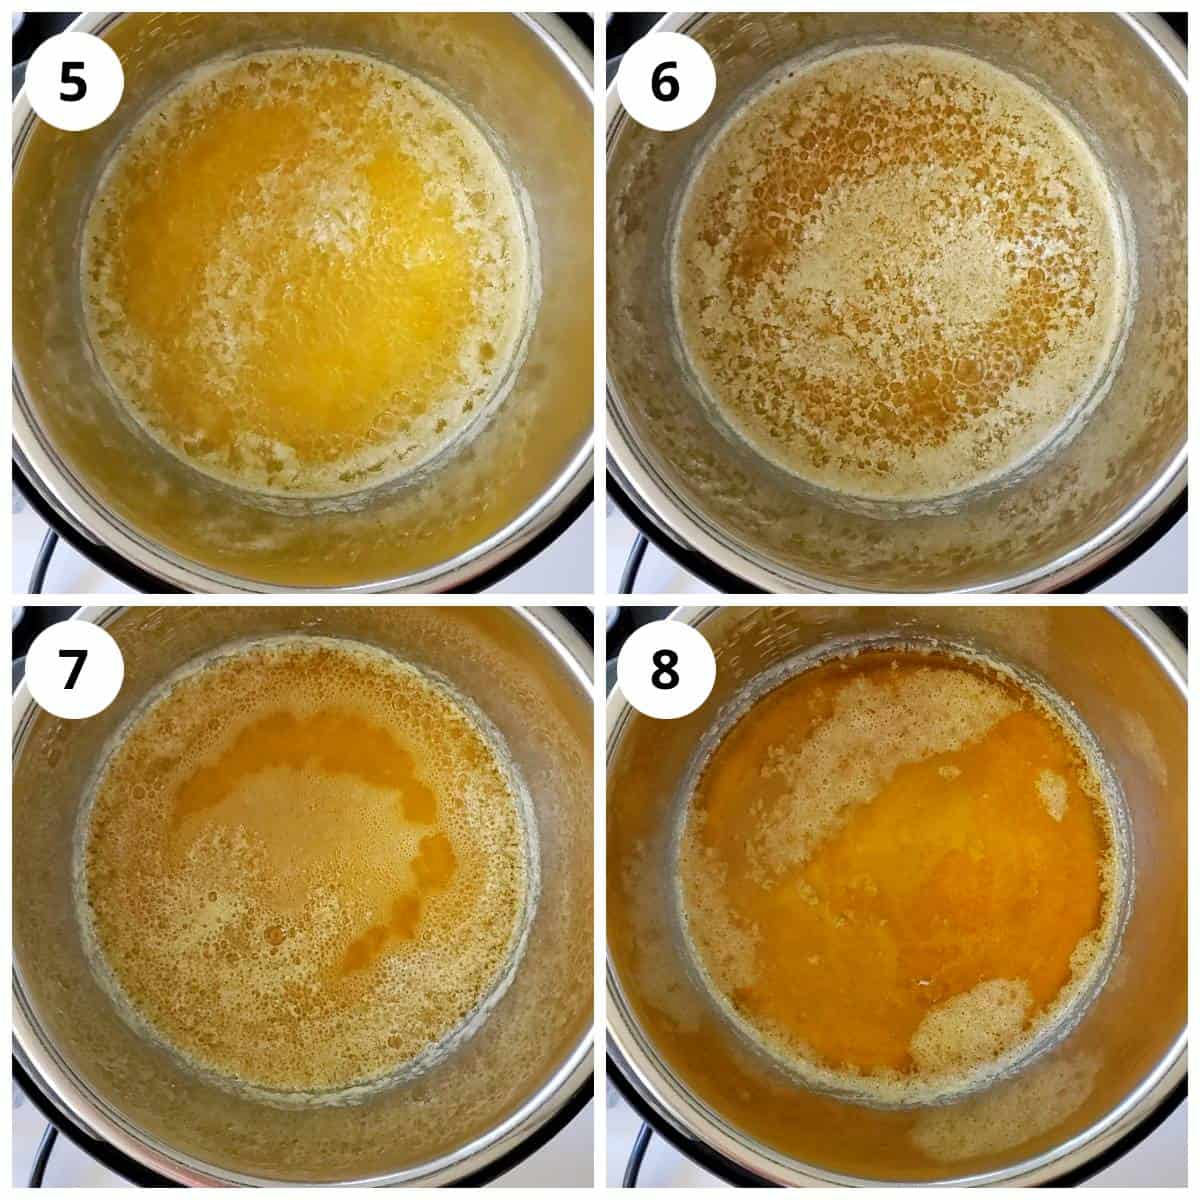 Steps showing milk solids seperating and settling to the bottom while making ghee in Instant Pot